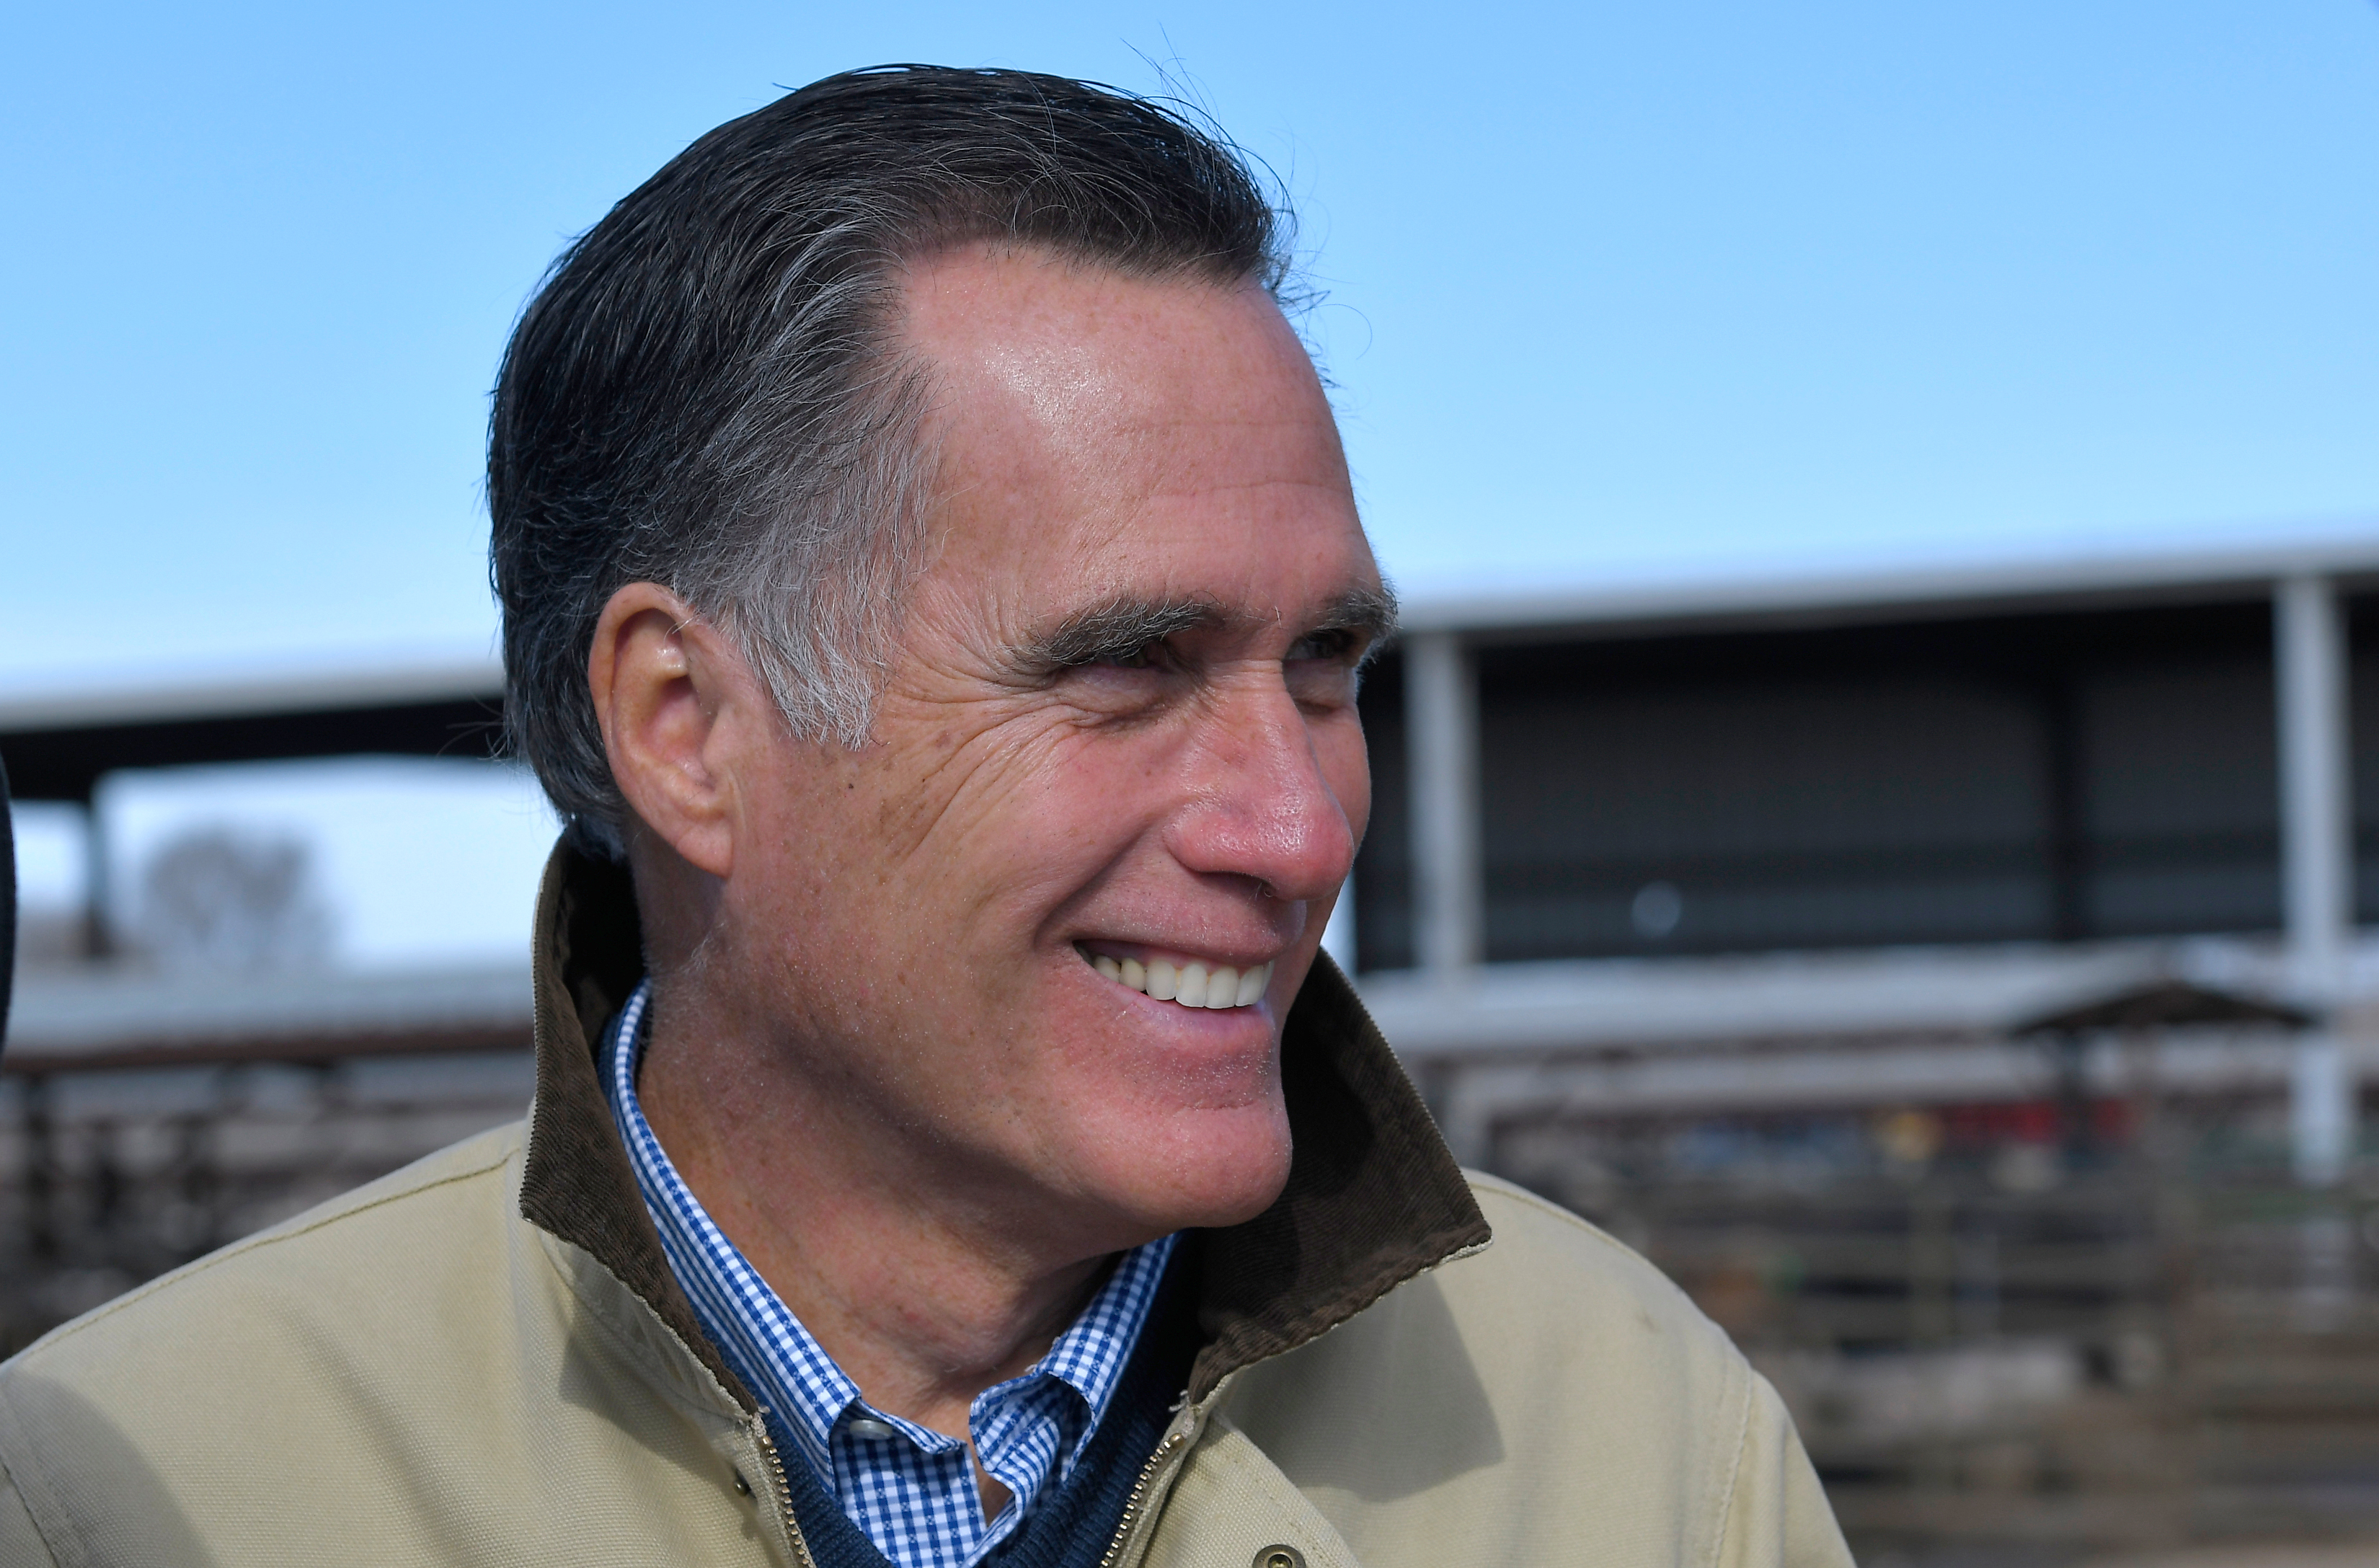 OGDEN, UT - FEBRUARY 16: Candidate for senate Mitt Romney tours Gibson's Green Acres Dairy on February 16, 2018 in Ogden, Utah. Mr. Romney is running for a U.S. Senate seat from Utah, currently held by Sen. Orrin Hatch, who announced his retirement after the current term expires. (Photo by Gene Sweeney Jr./Getty Images) *** Local Caption *** Mitt Romney